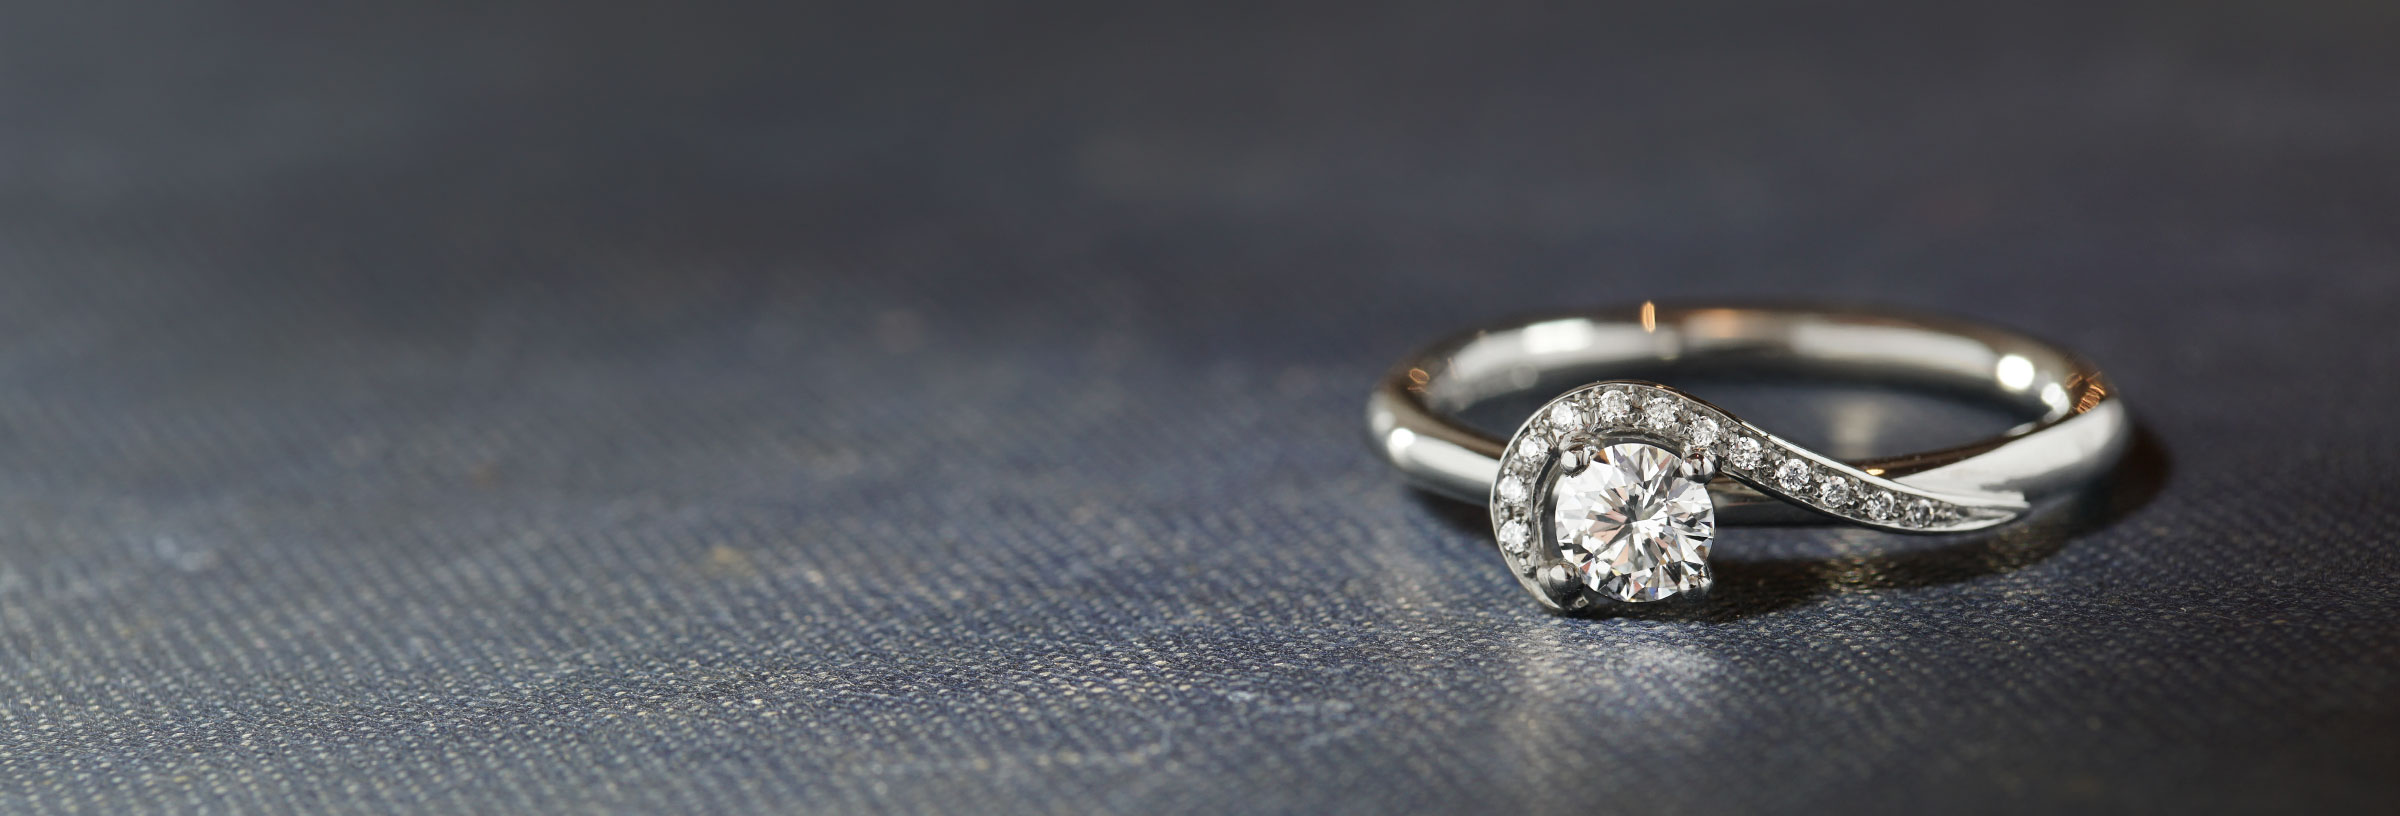 platinum-engagement-ring-with-curl-diamond-detail